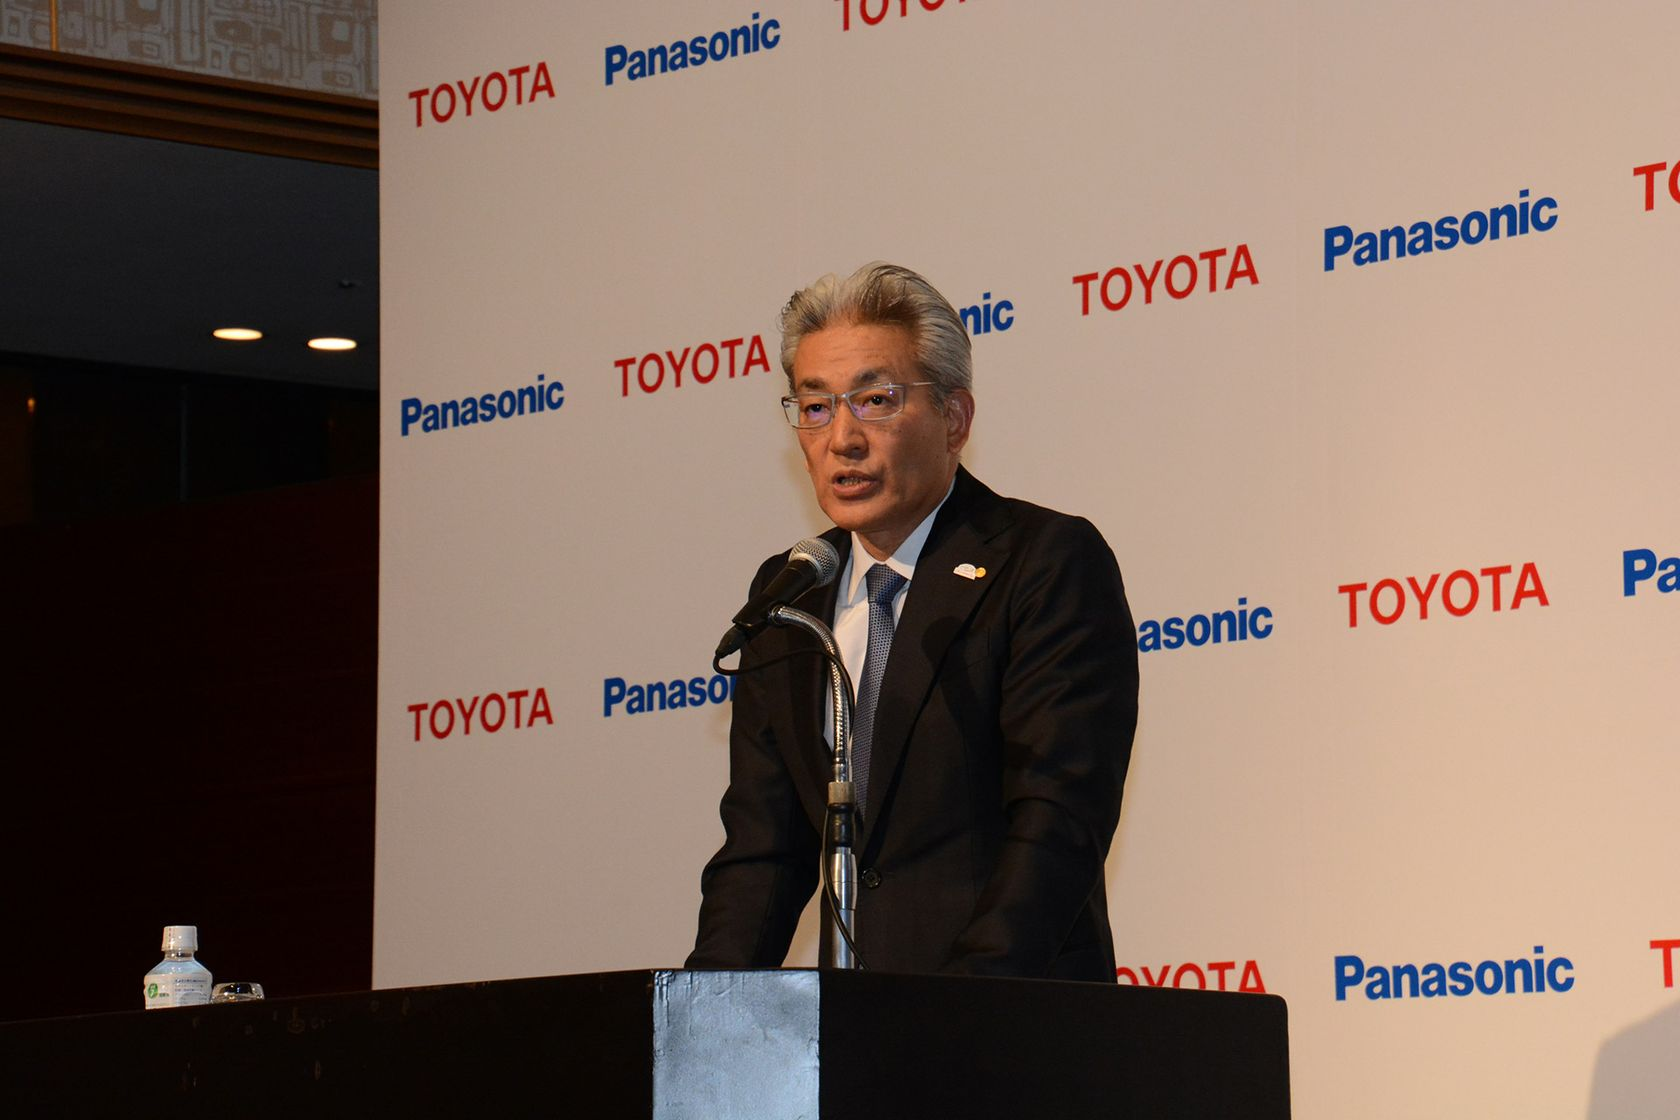 Toyota and Panasonic 2